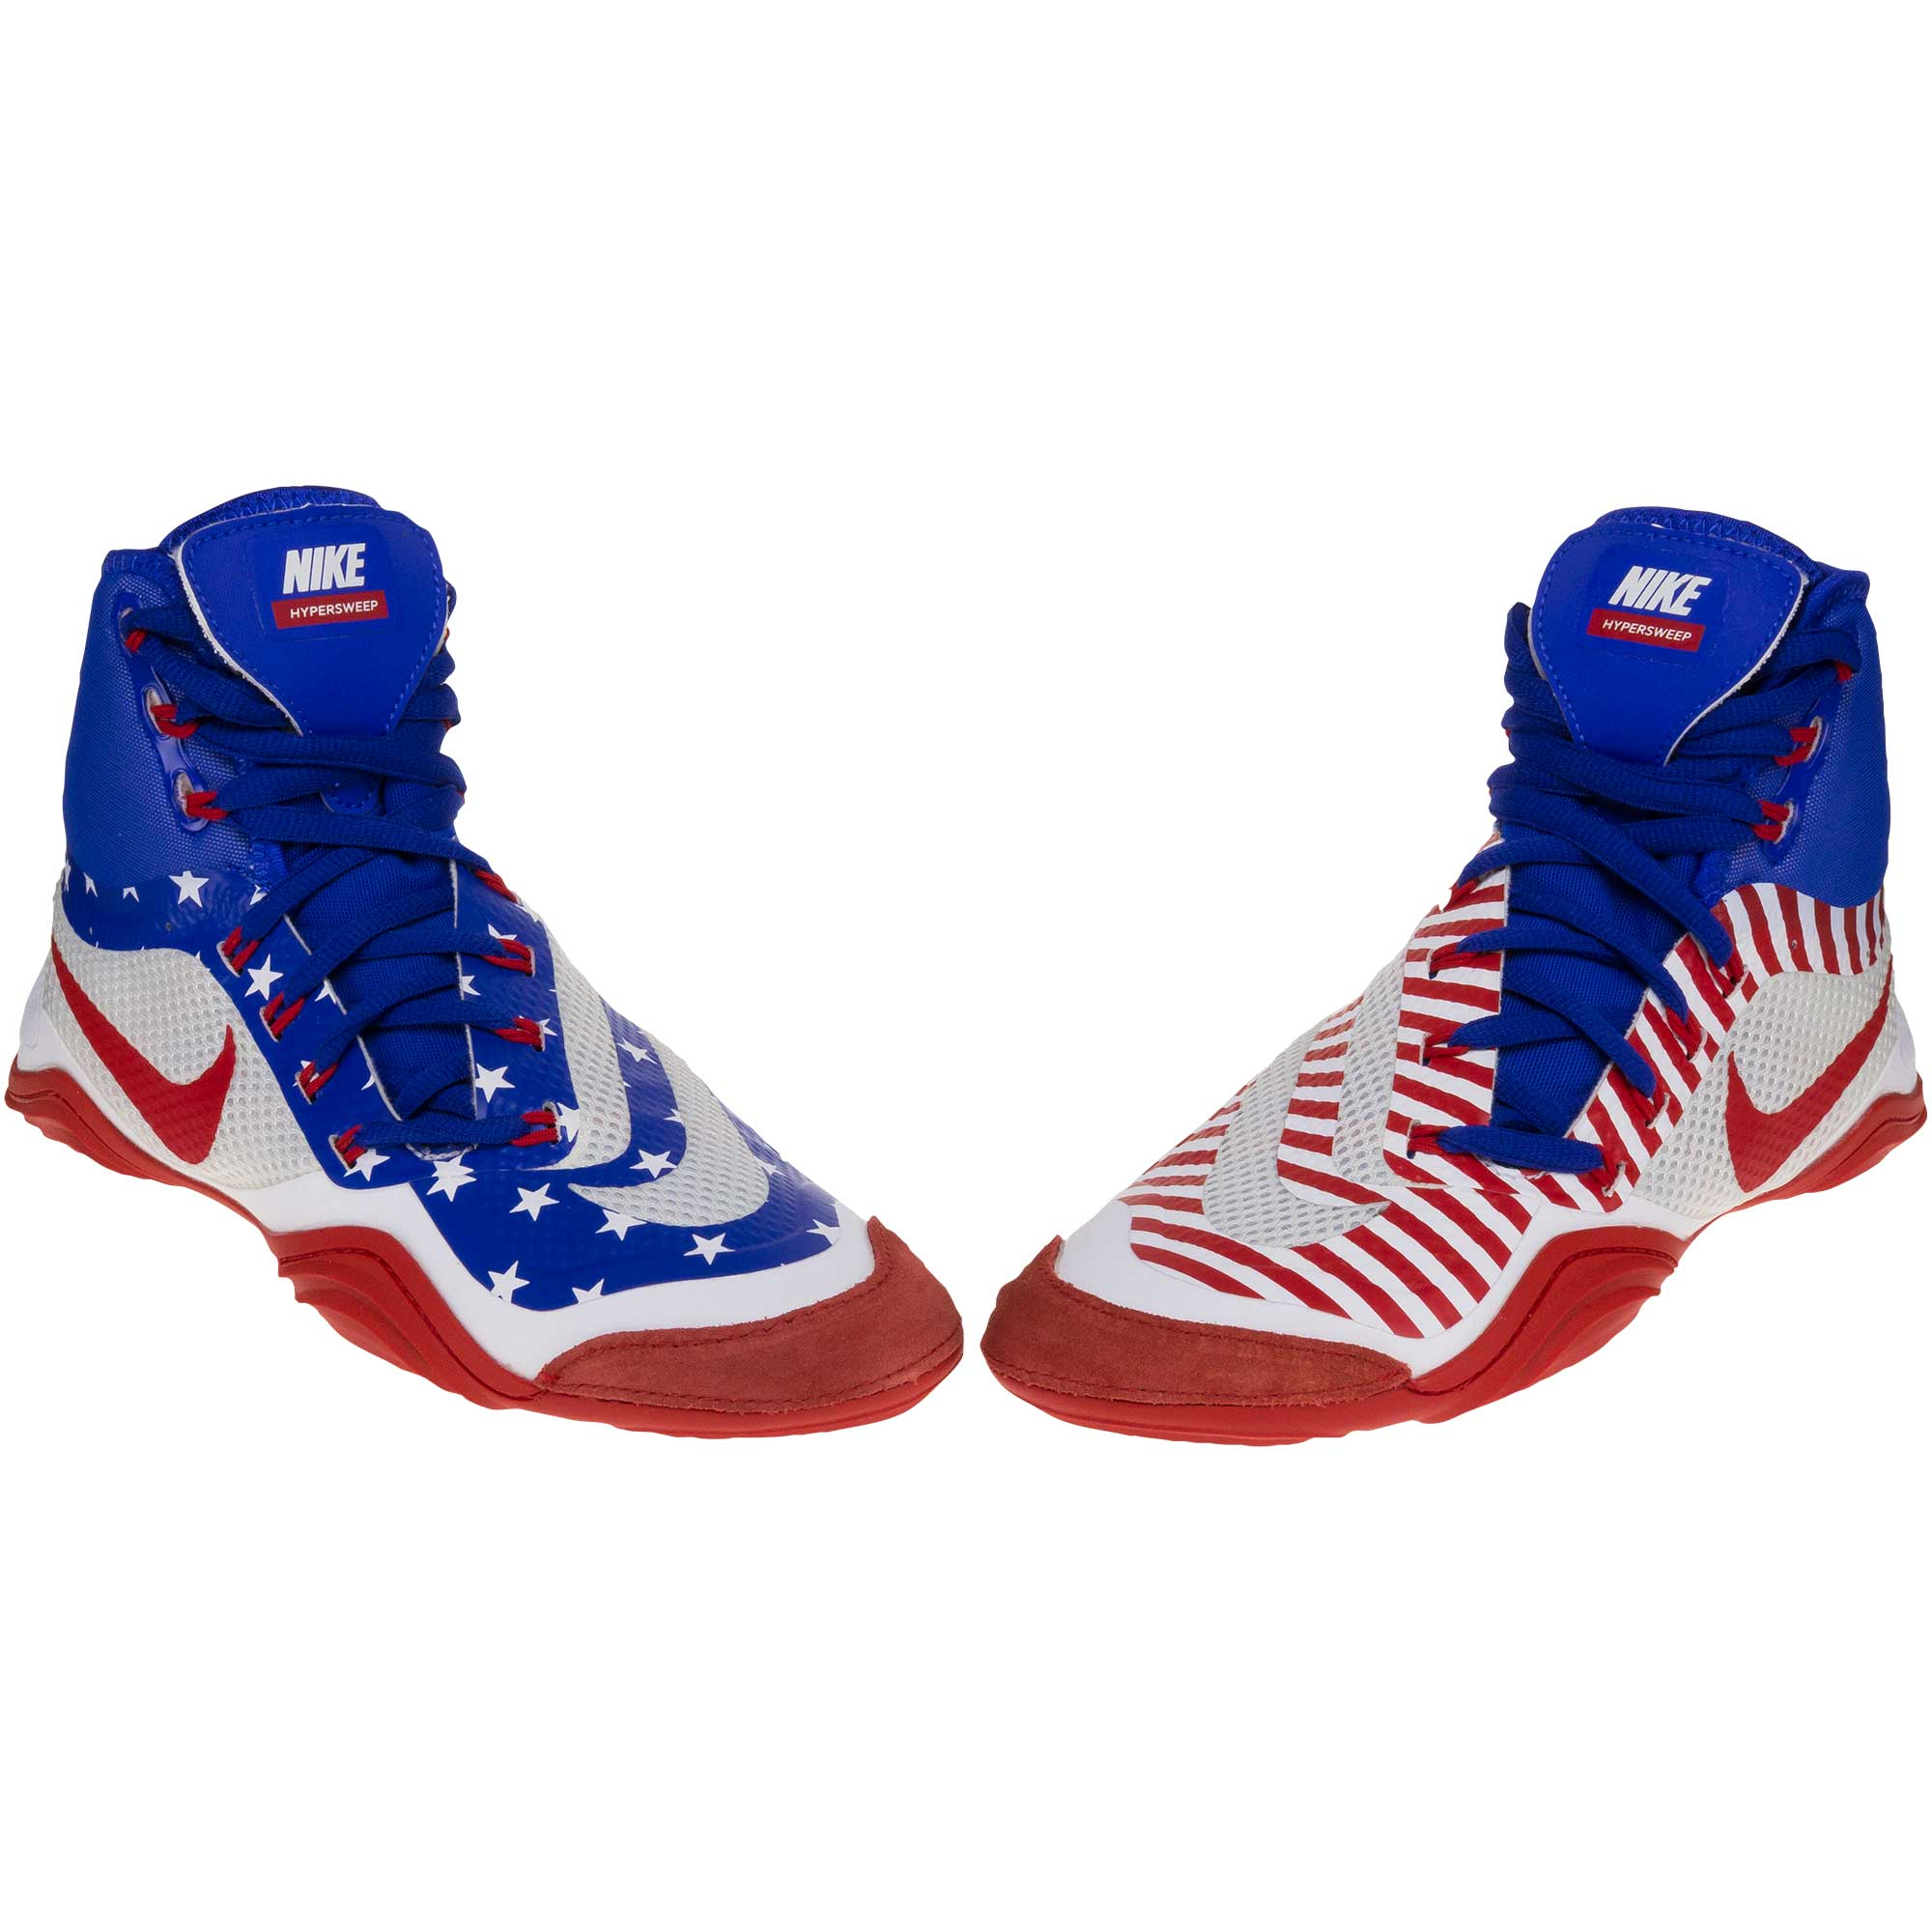 92b276c6bf84 ... RedNike Hypersweep USA White Blue Red ...